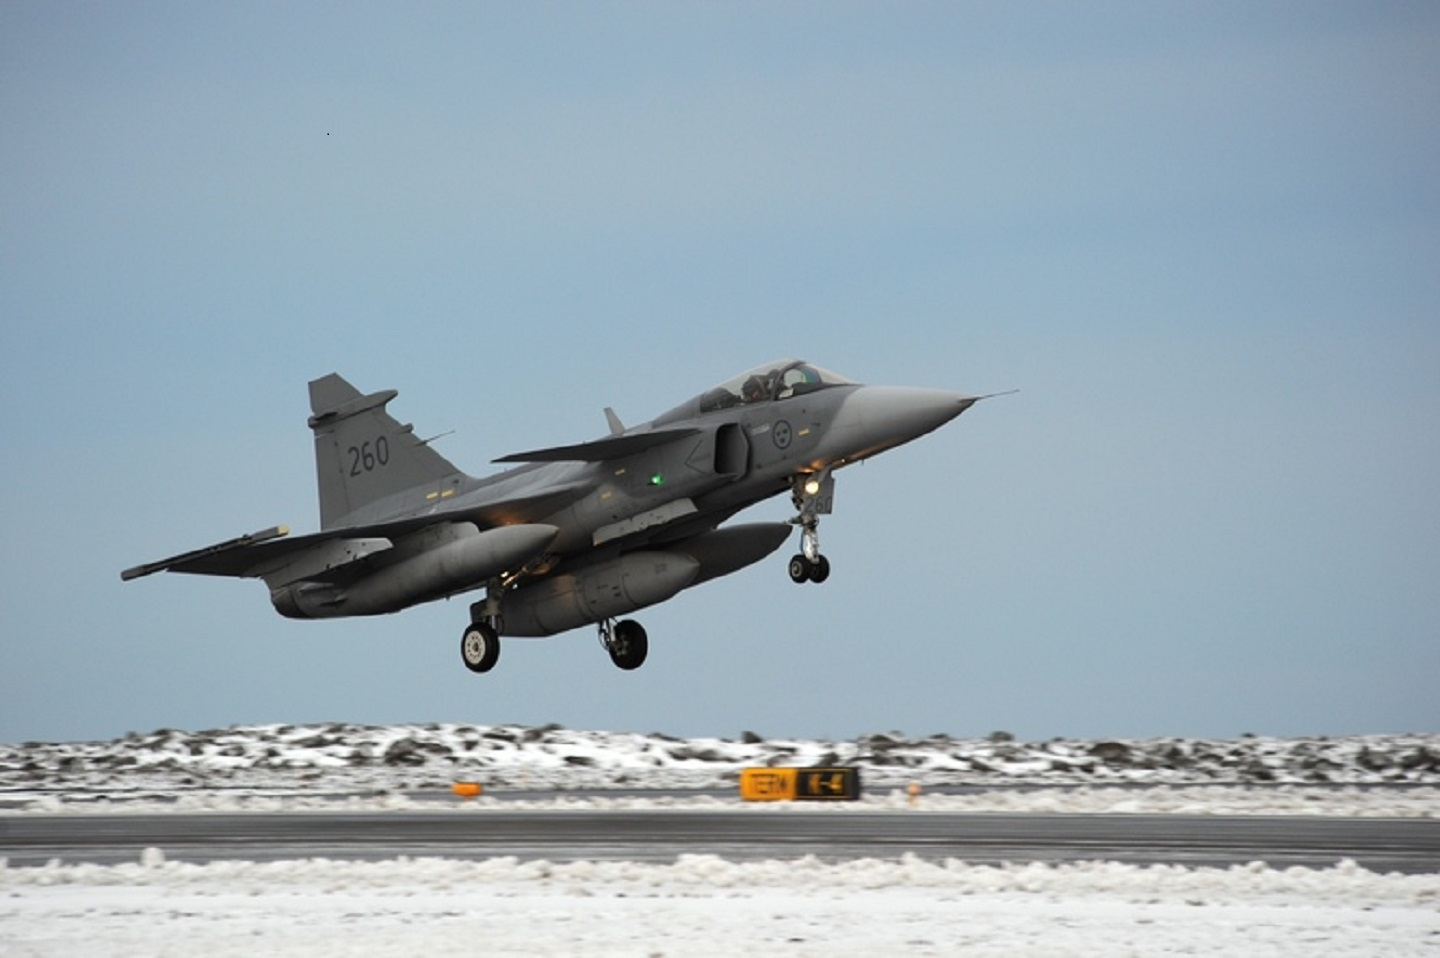 A Swedish JAS Gripen lands in Iceland